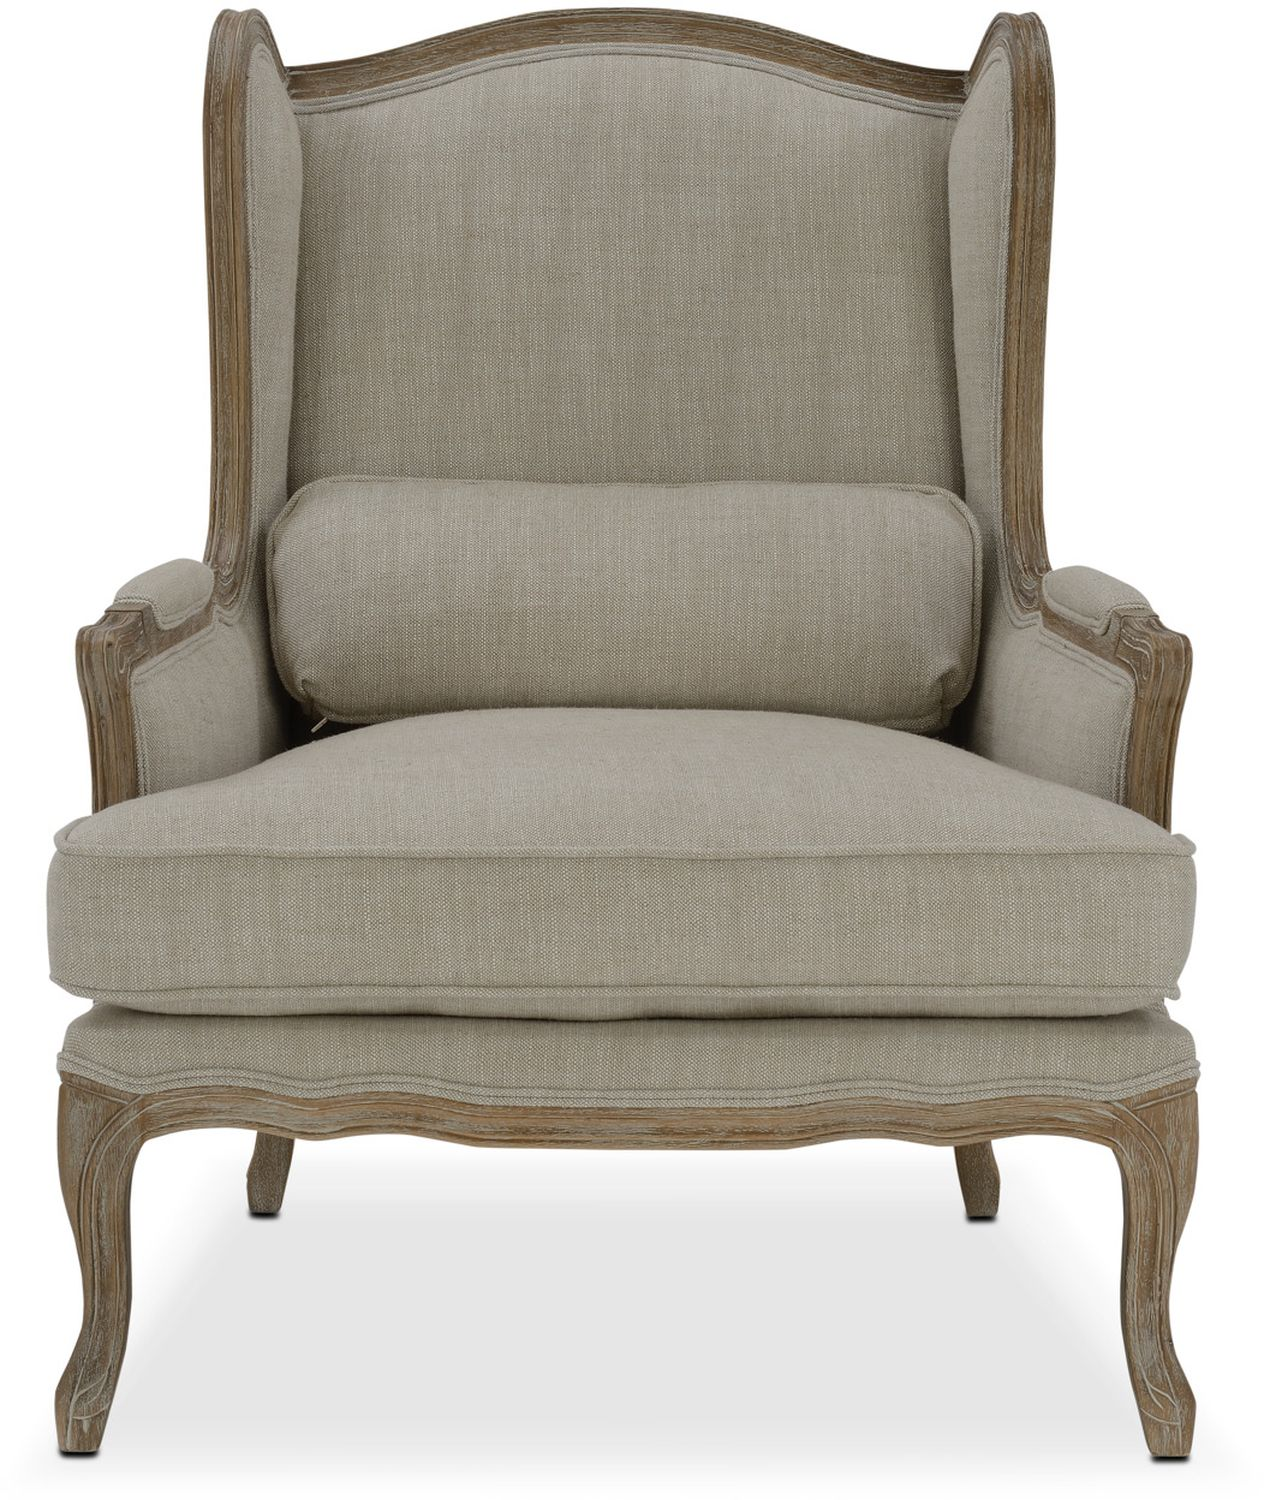 Maria Accent Chair Ivory Value City Furniture And